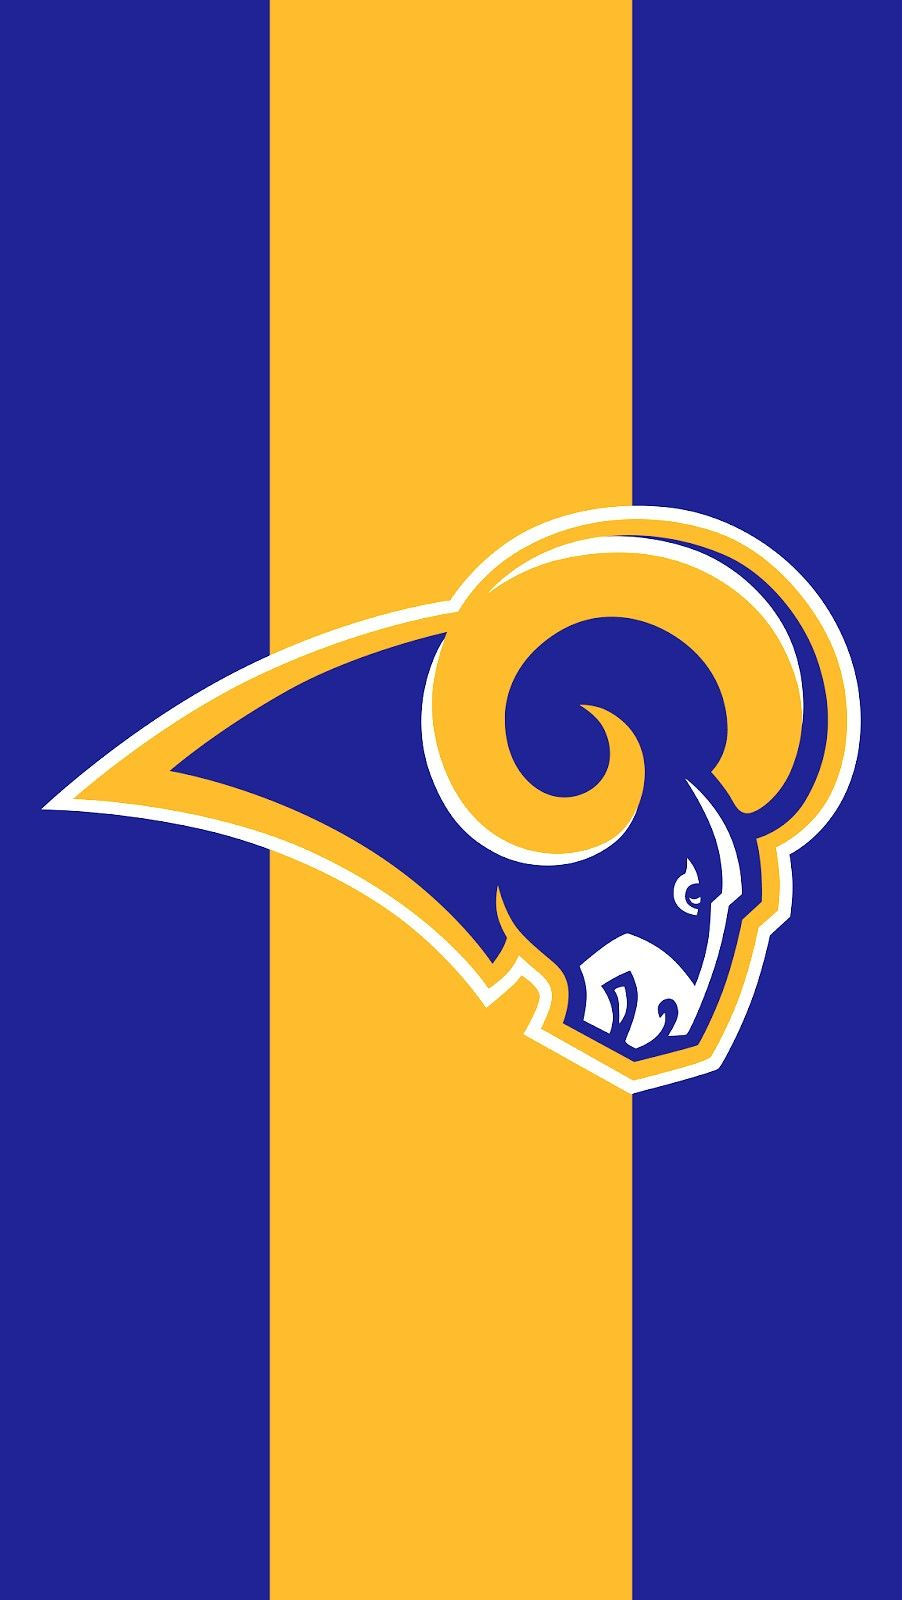 Los Angeles Rams Wallpaper Ram Wallpaper Los Angeles Rams Los Angeles Rams Logo